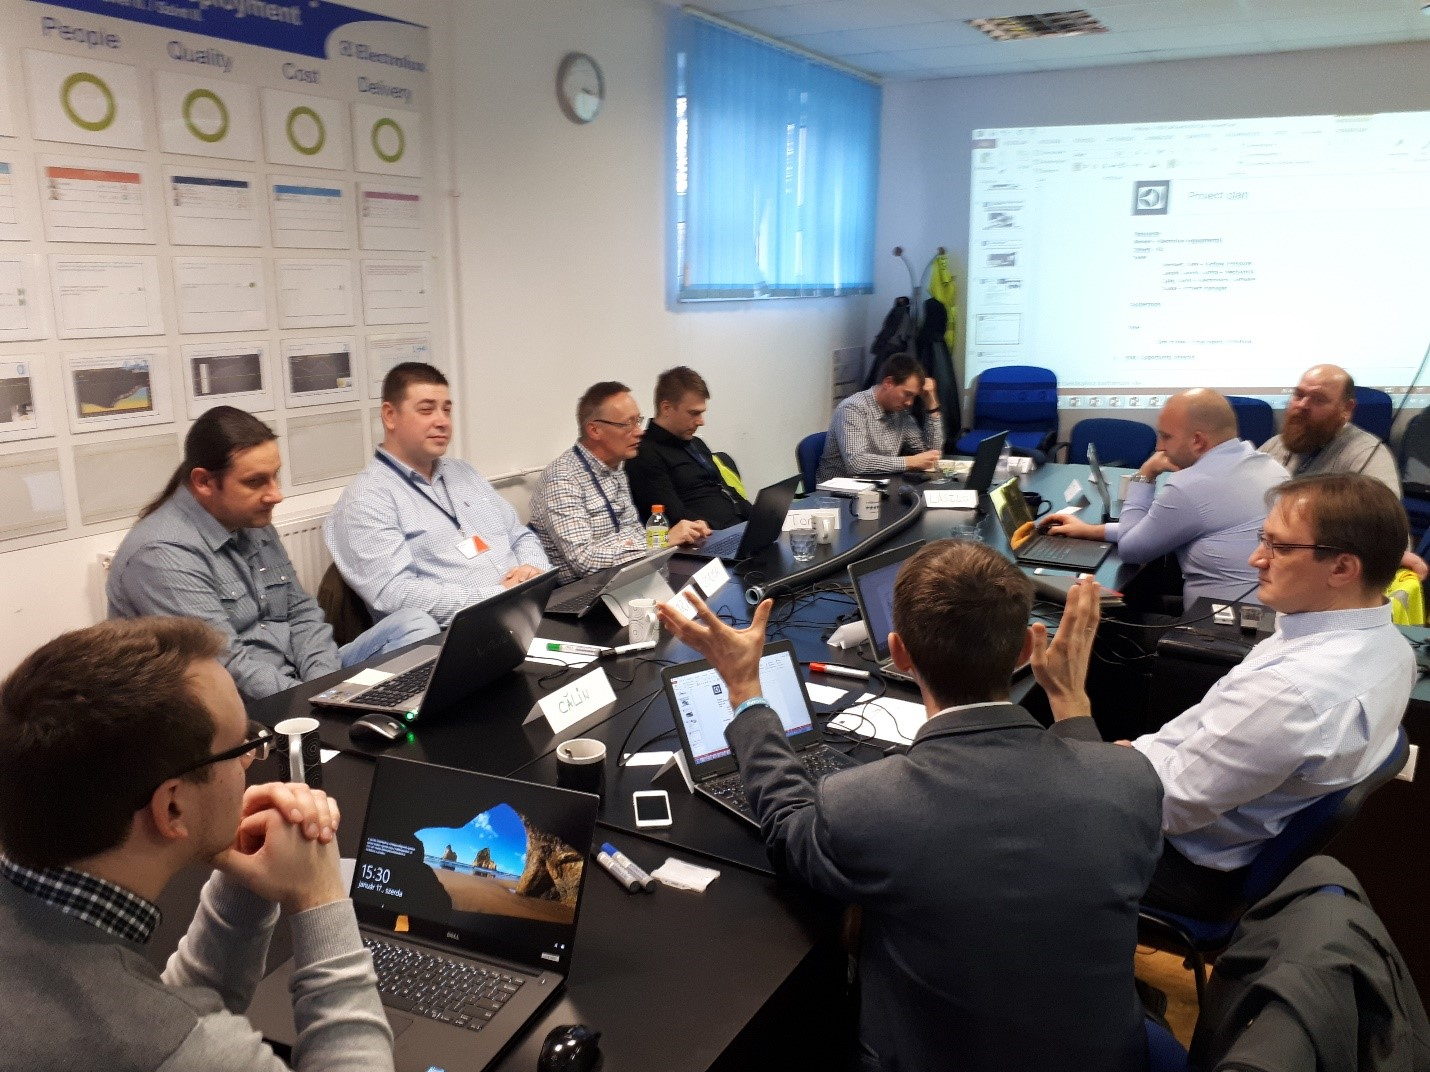 Kick-off meeting of the Electrolux-pilot project